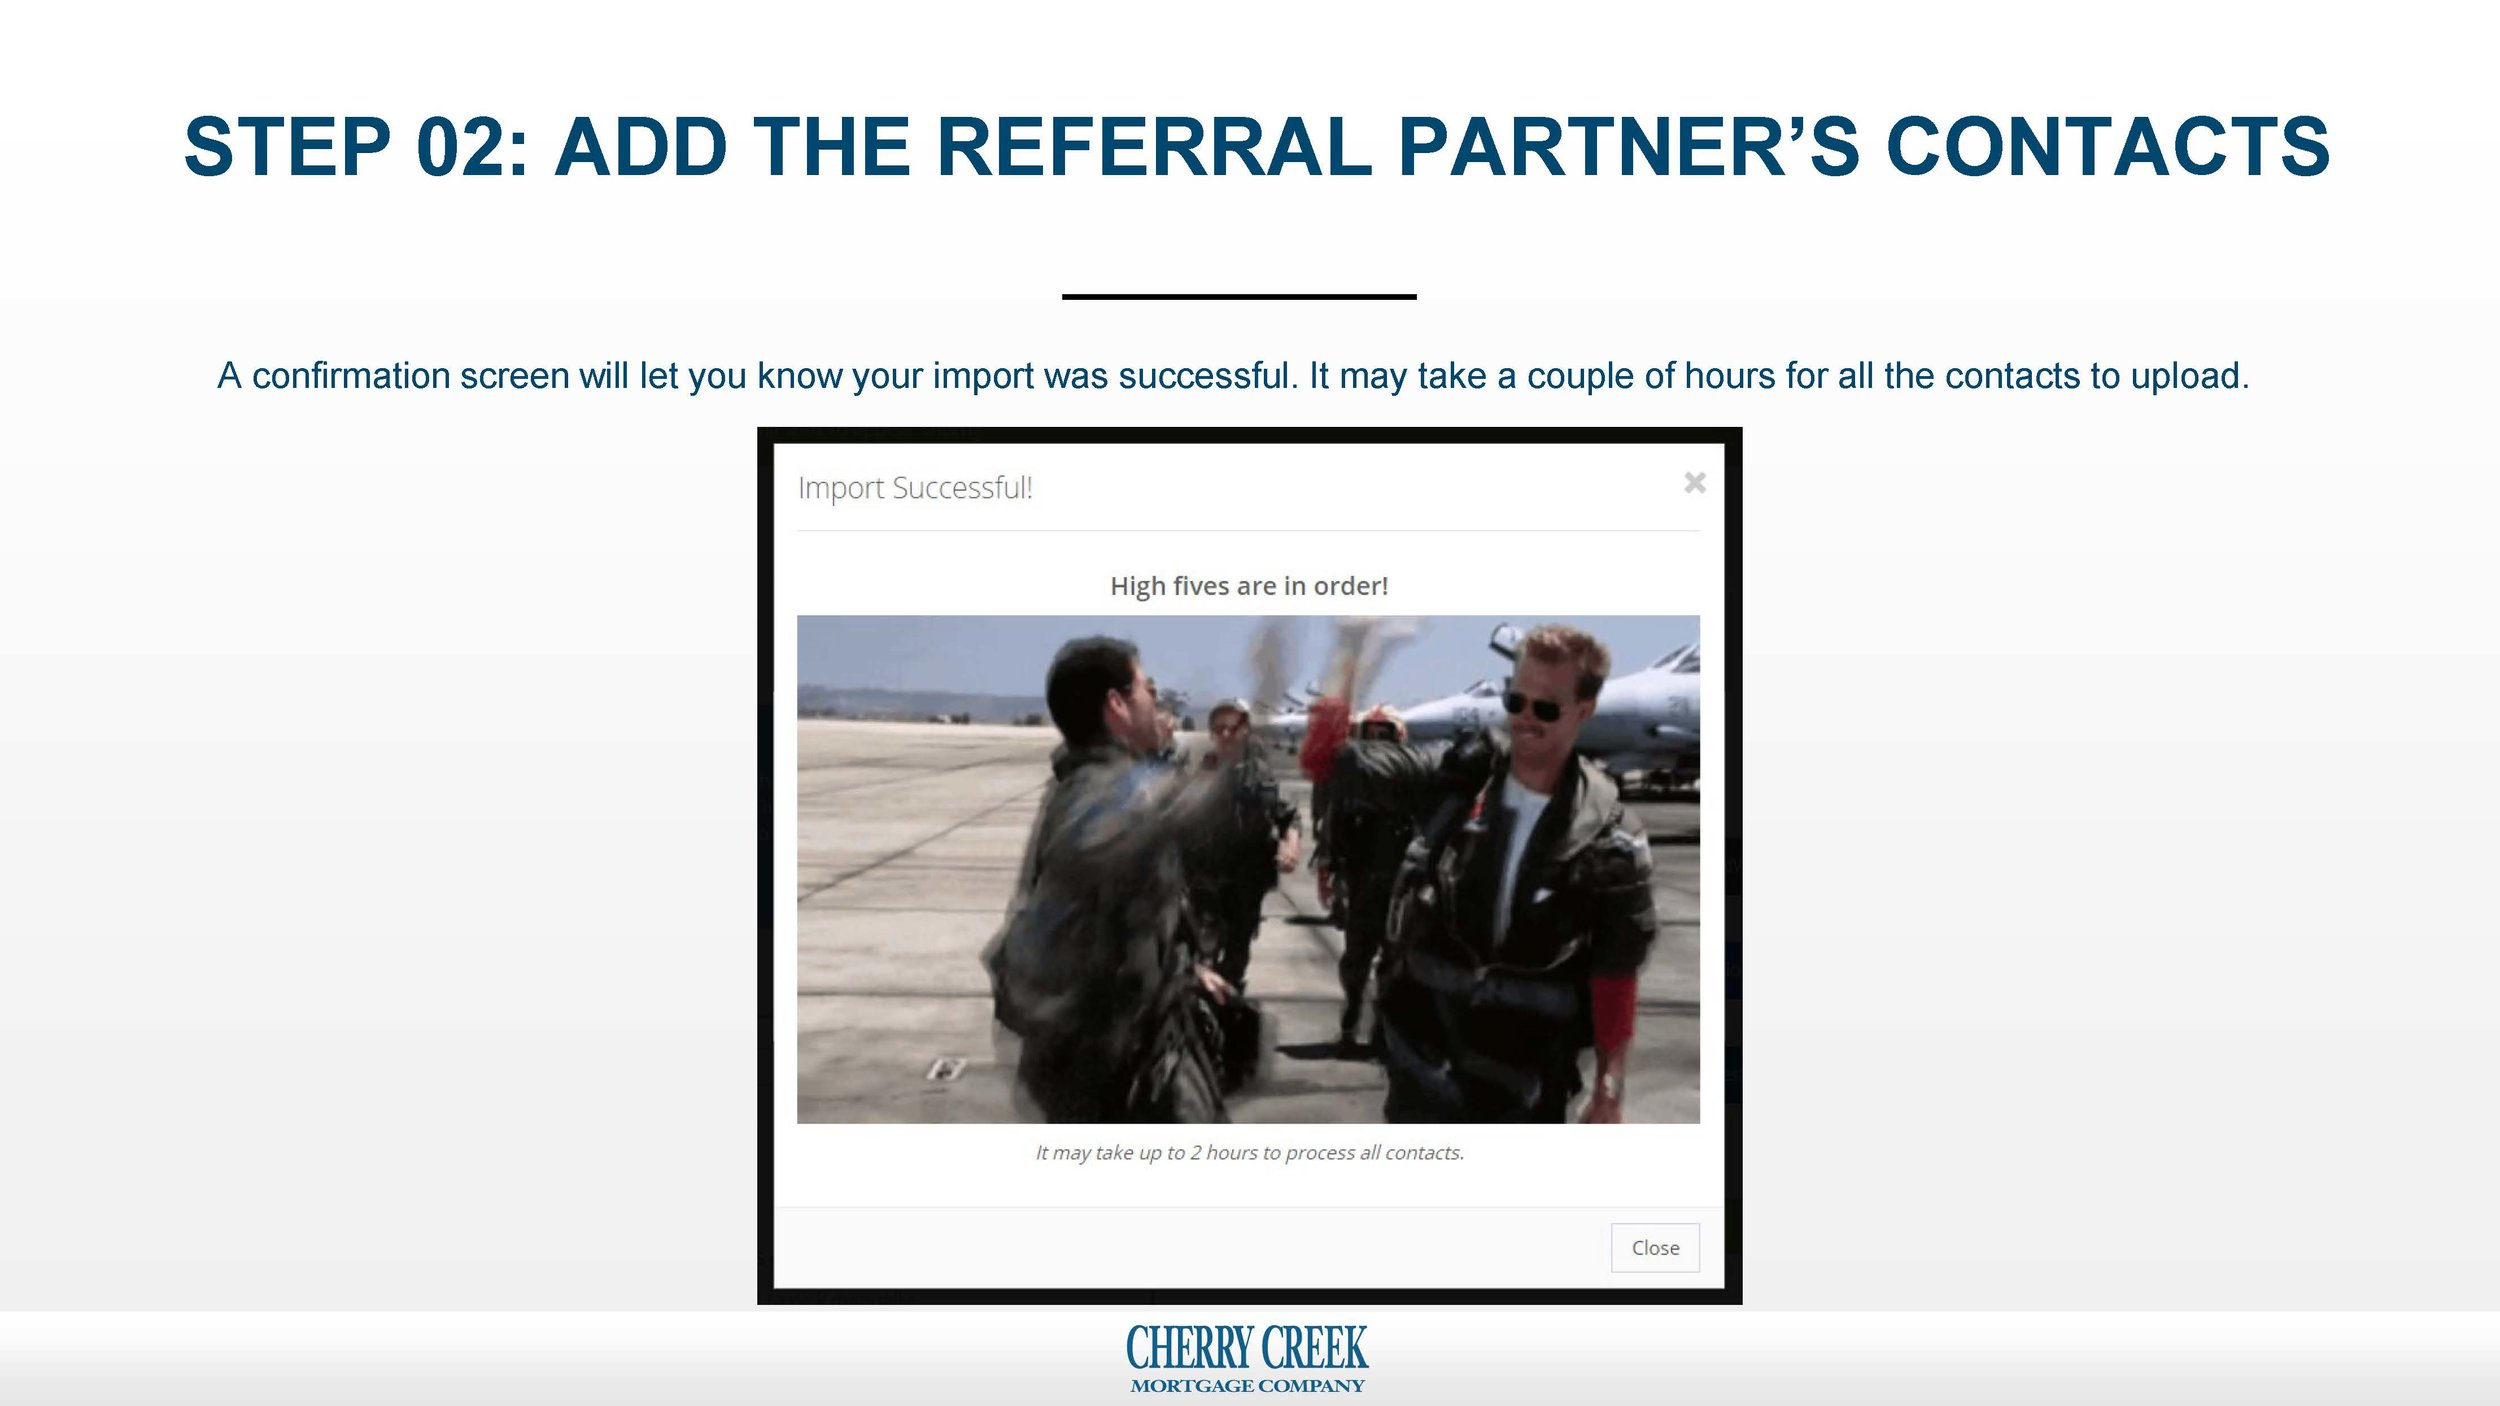 Predictive Analytics - How to add a referral partner_add their contacts_and view their hot list_Page_07.jpg